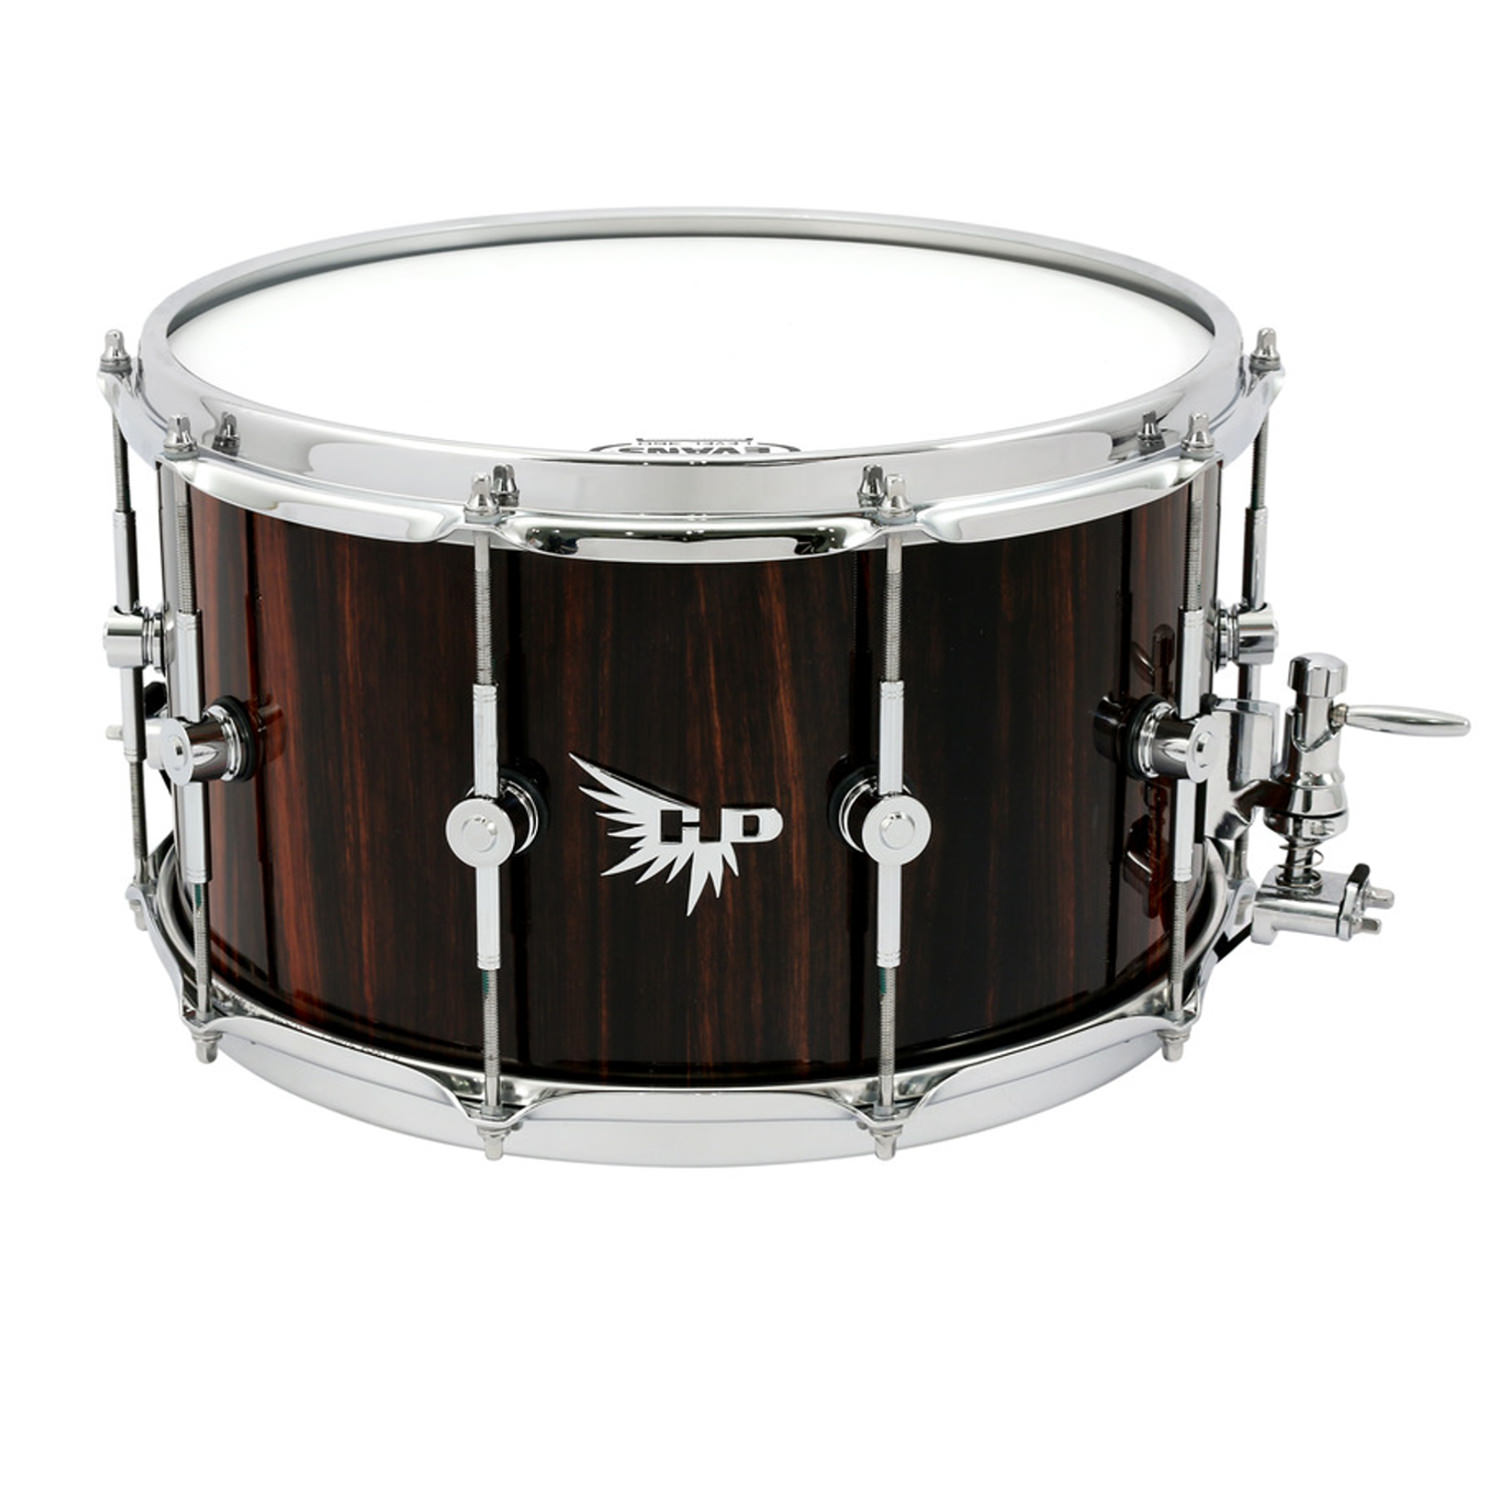 Stave Snare Drum Hendrix Drums HD Best Macassar Ebony Gloss Dunnet